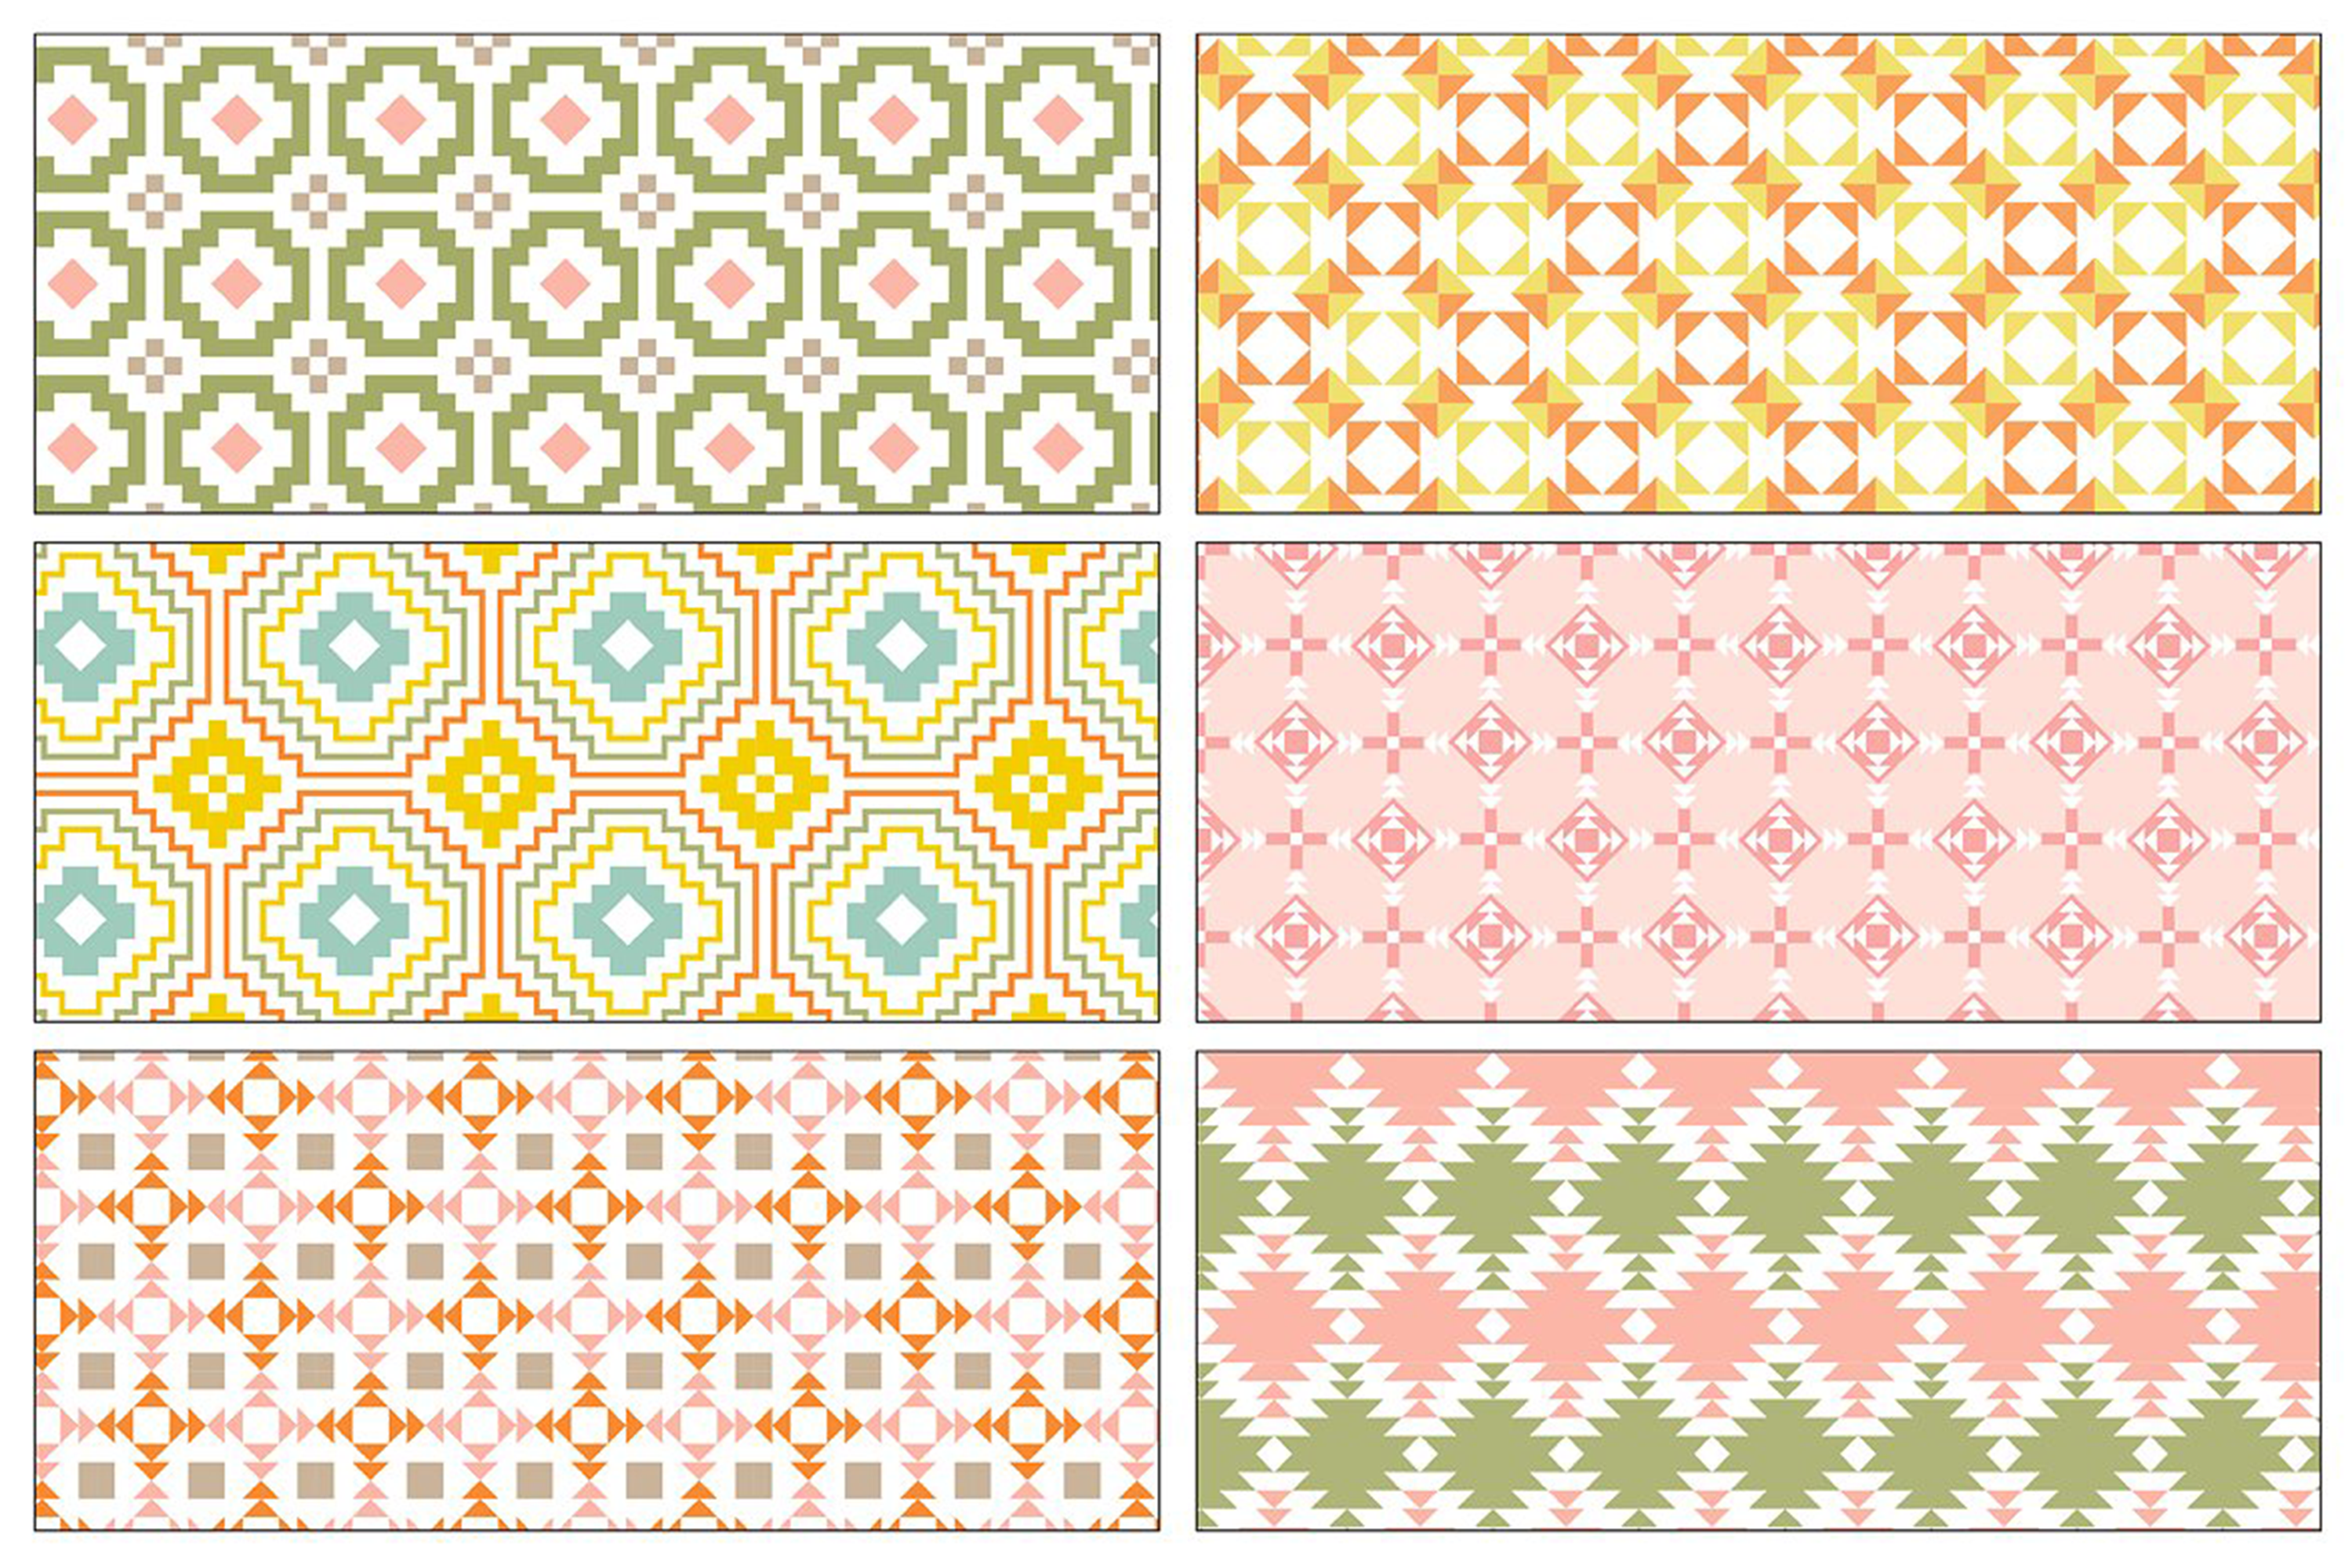 Seamless Pastel Native American Patterns example image 6